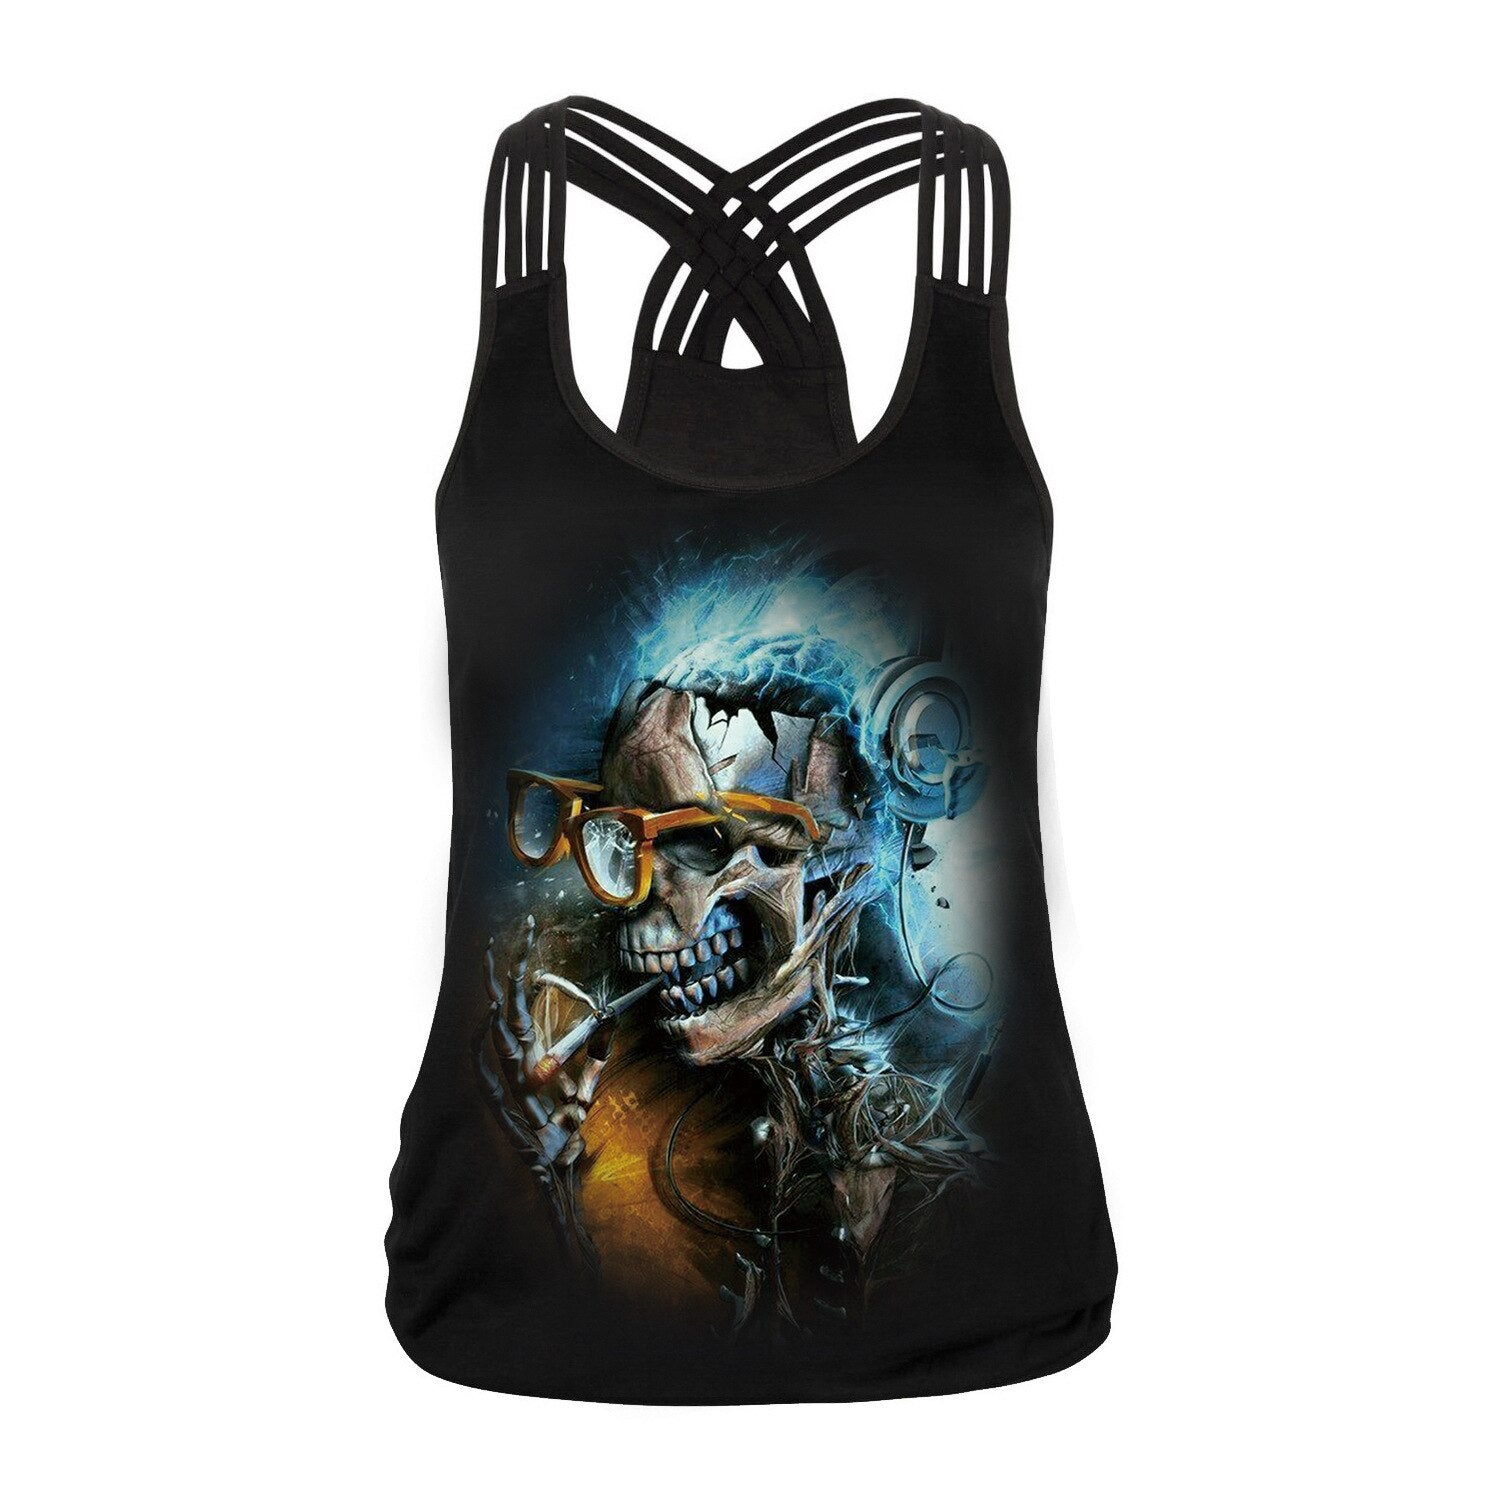 Sugar Skull Tank Top for Women / Halloween Fashion / Gothic Style Back Cross Sleeveless Vest #1 - HARD'N'HEAVY